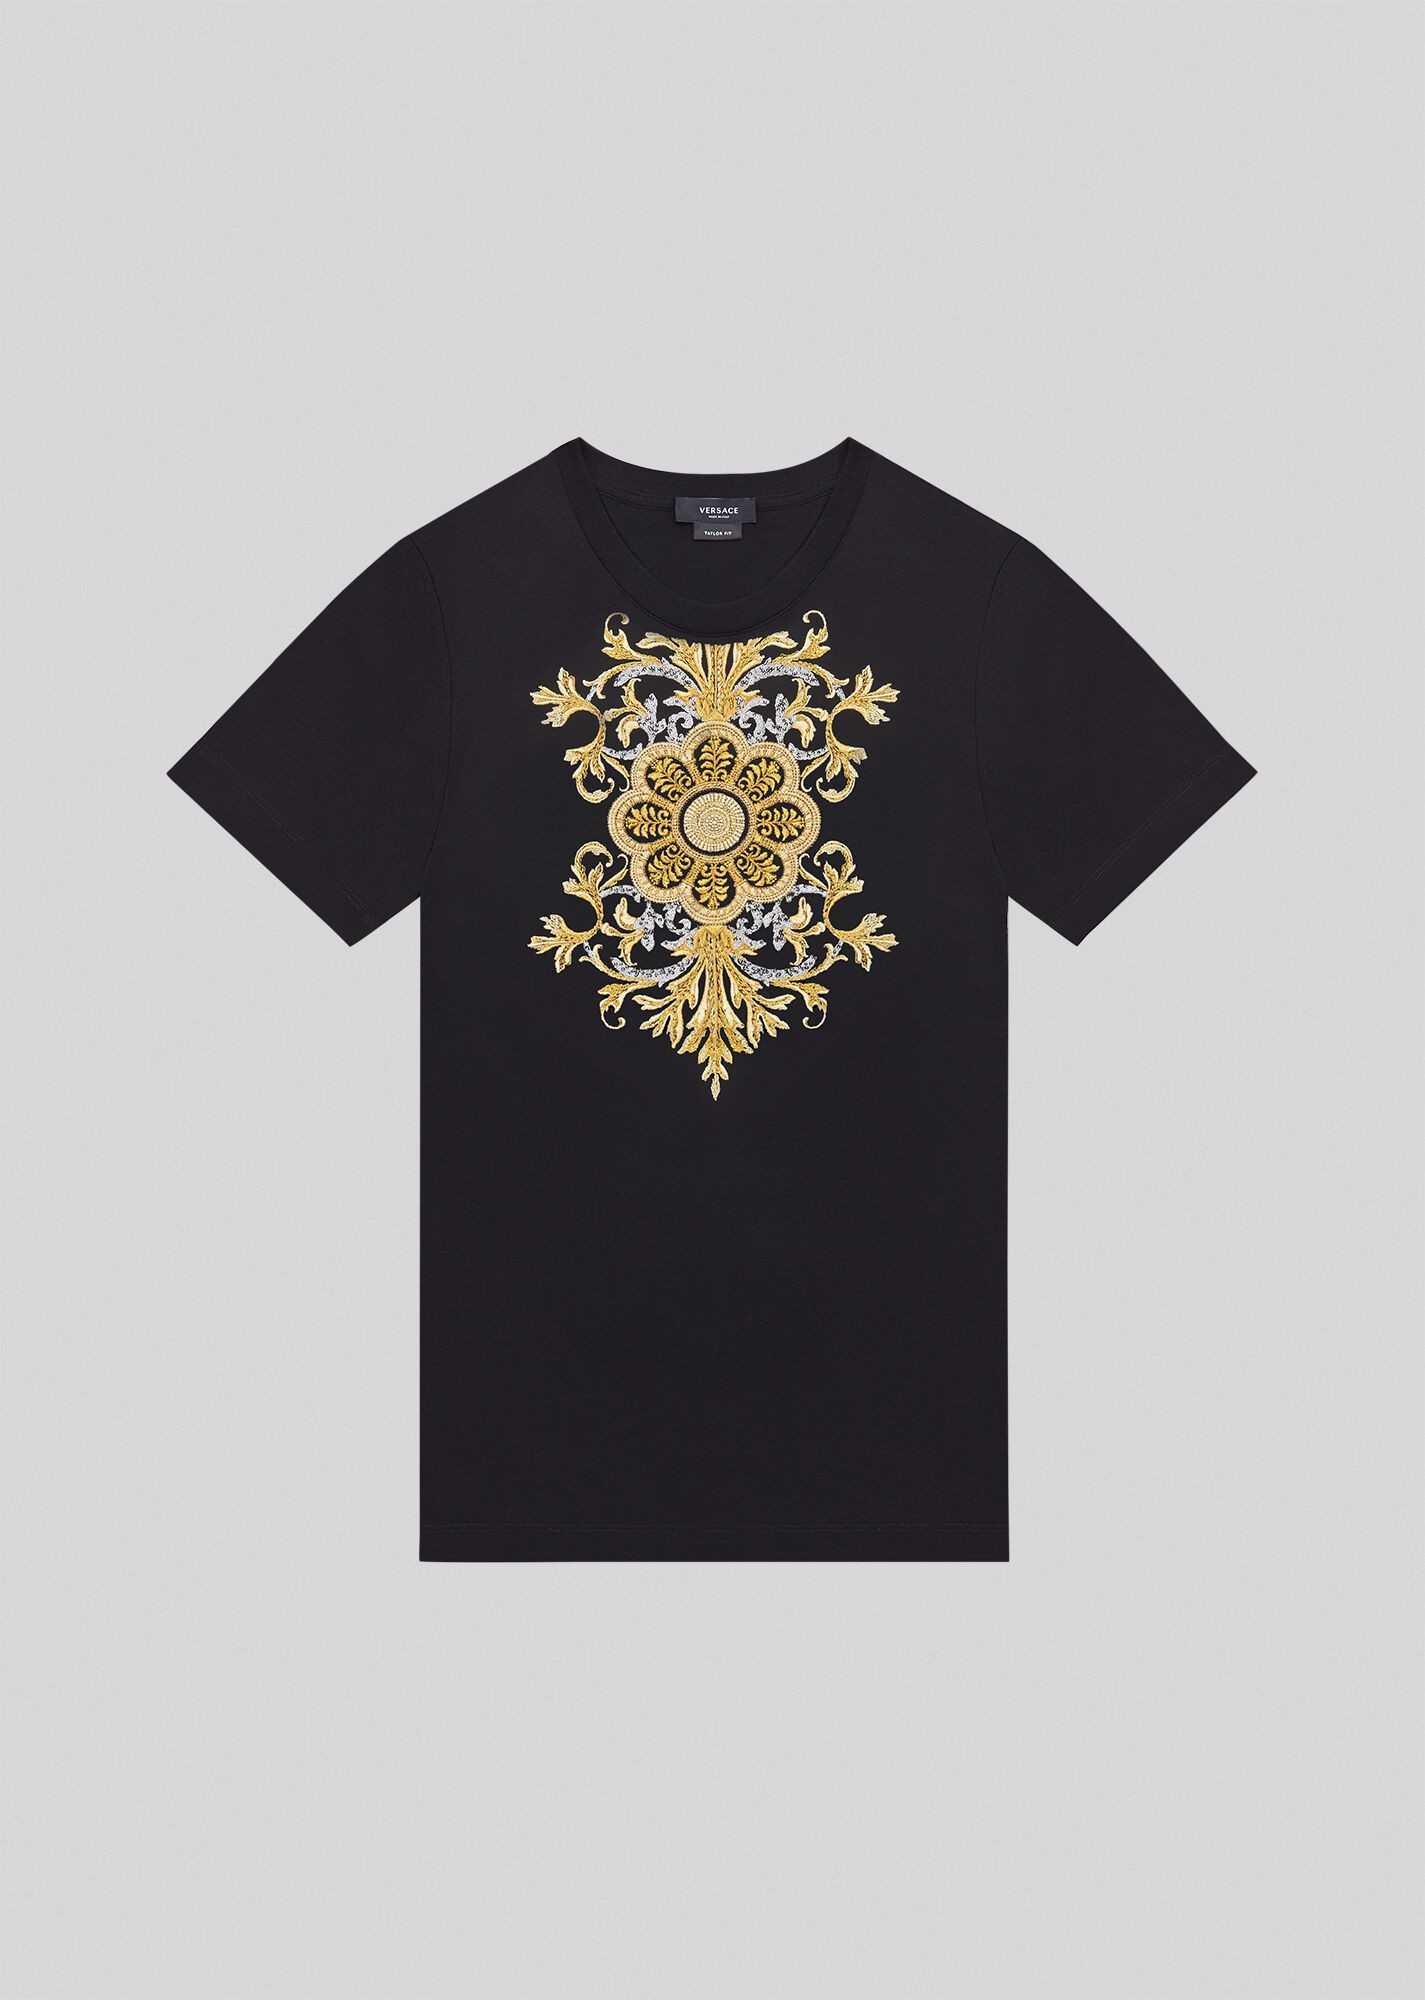 Embroidered Barocco Acanthus T-Shirt